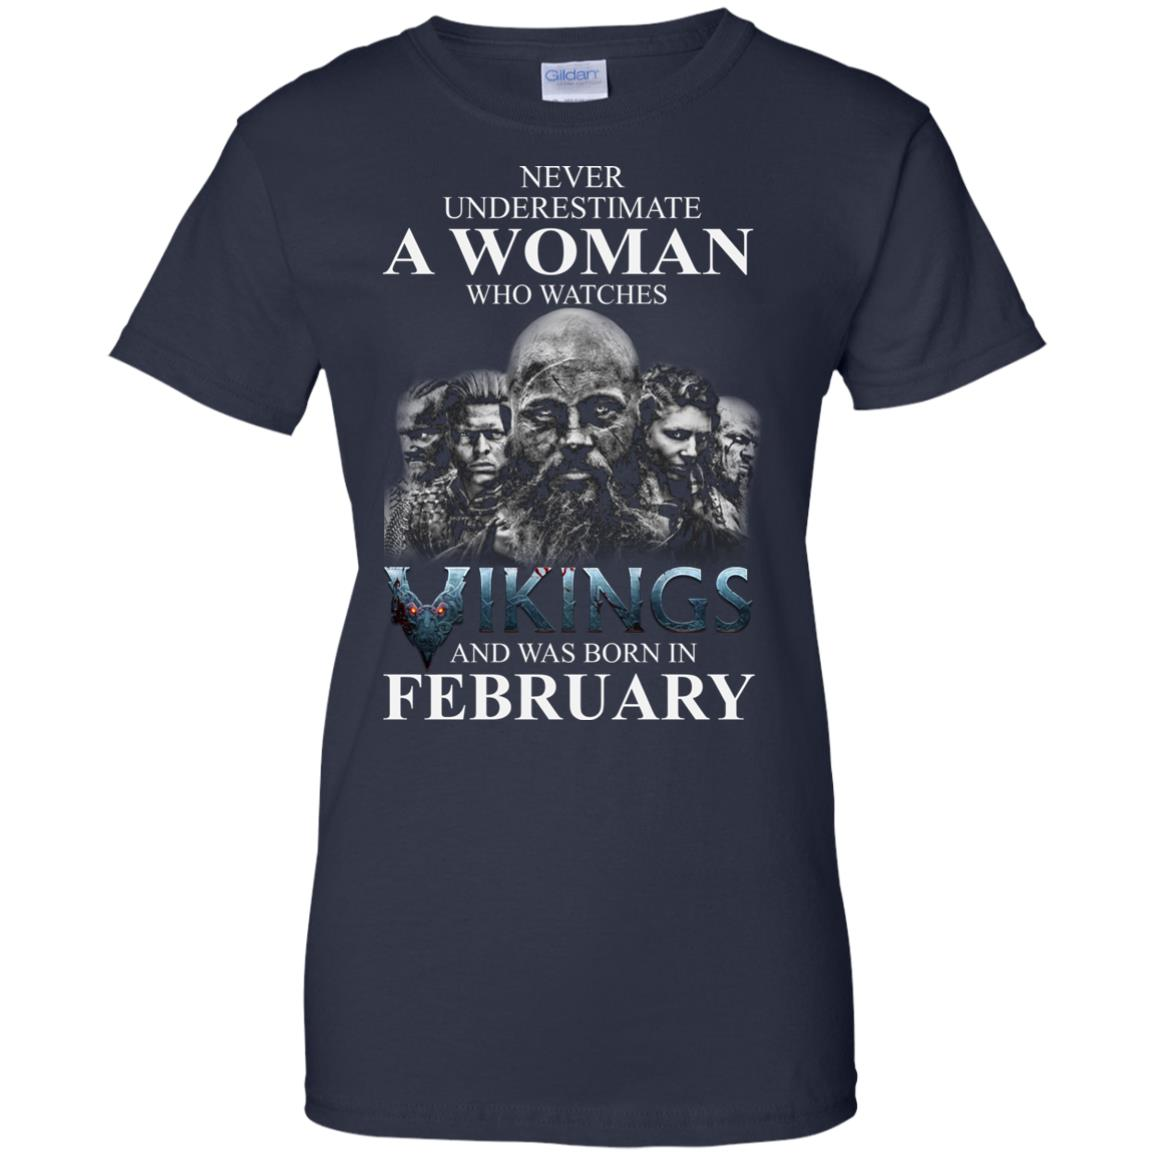 image 1350 - Never Underestimate A woman who watches Vikings and was born in February shirt